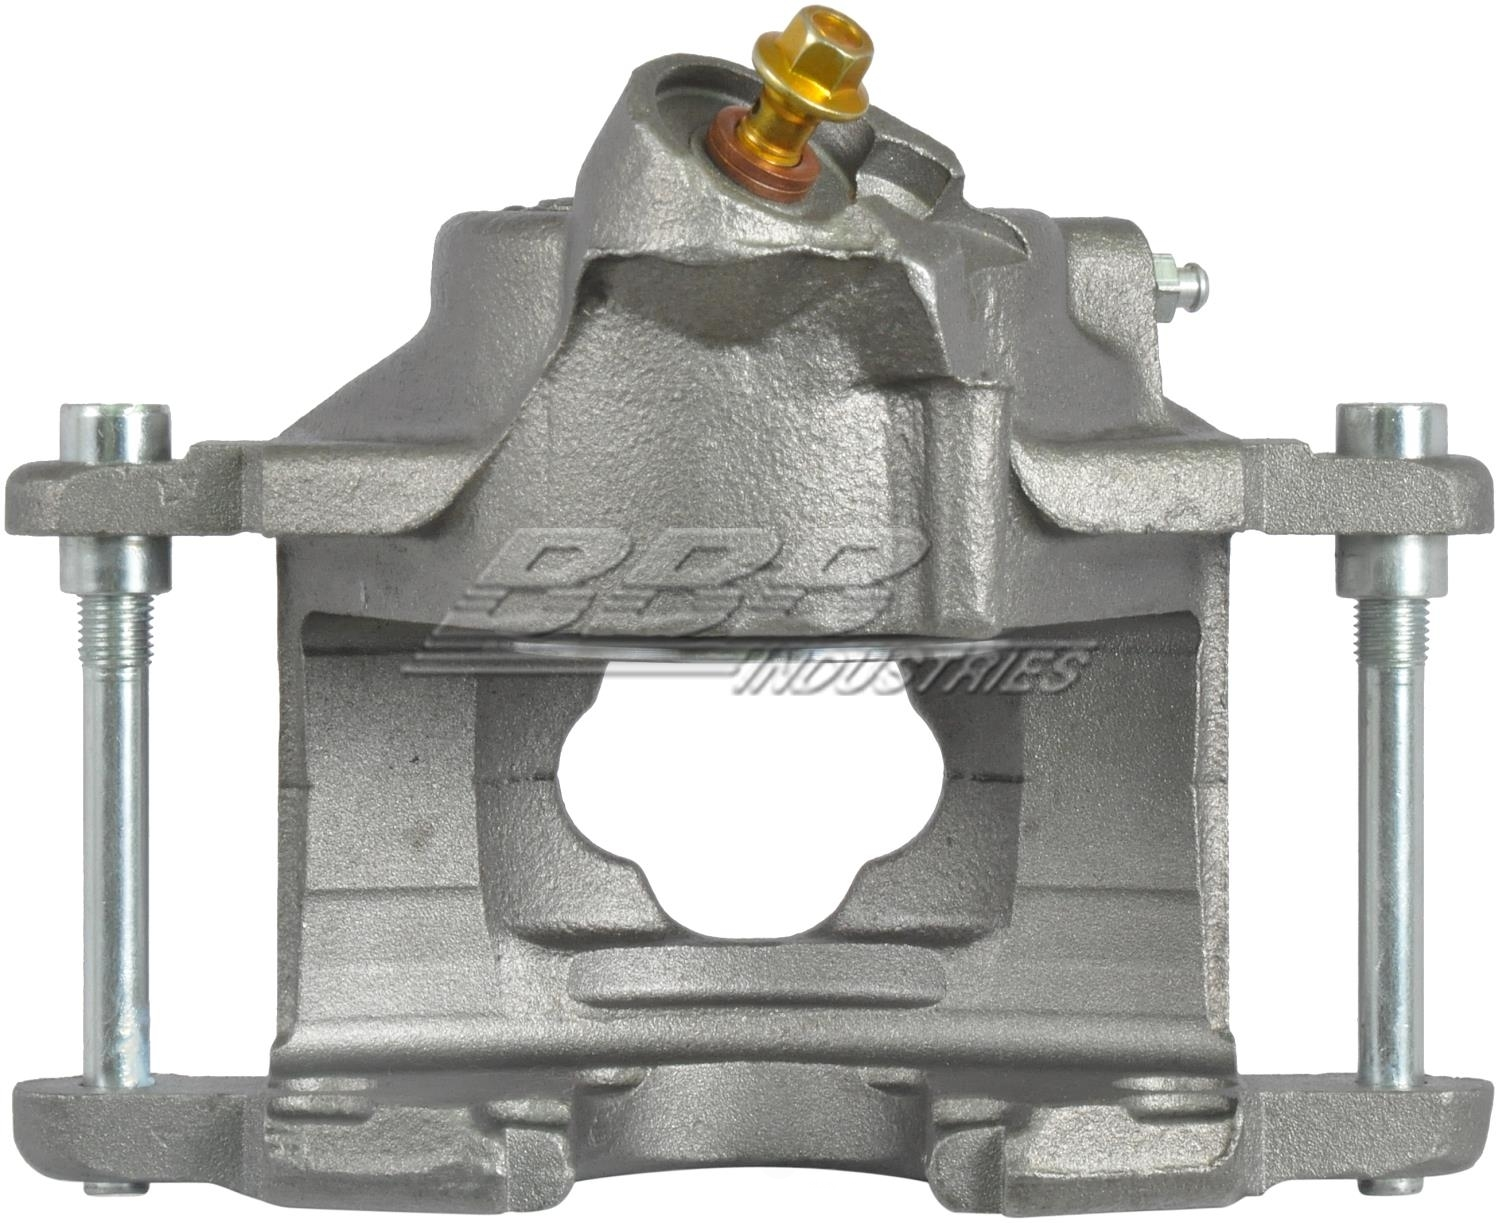 BBB INDUSTRIES - Reman Caliper w/ Installation Hardware - BBA 97-17243B